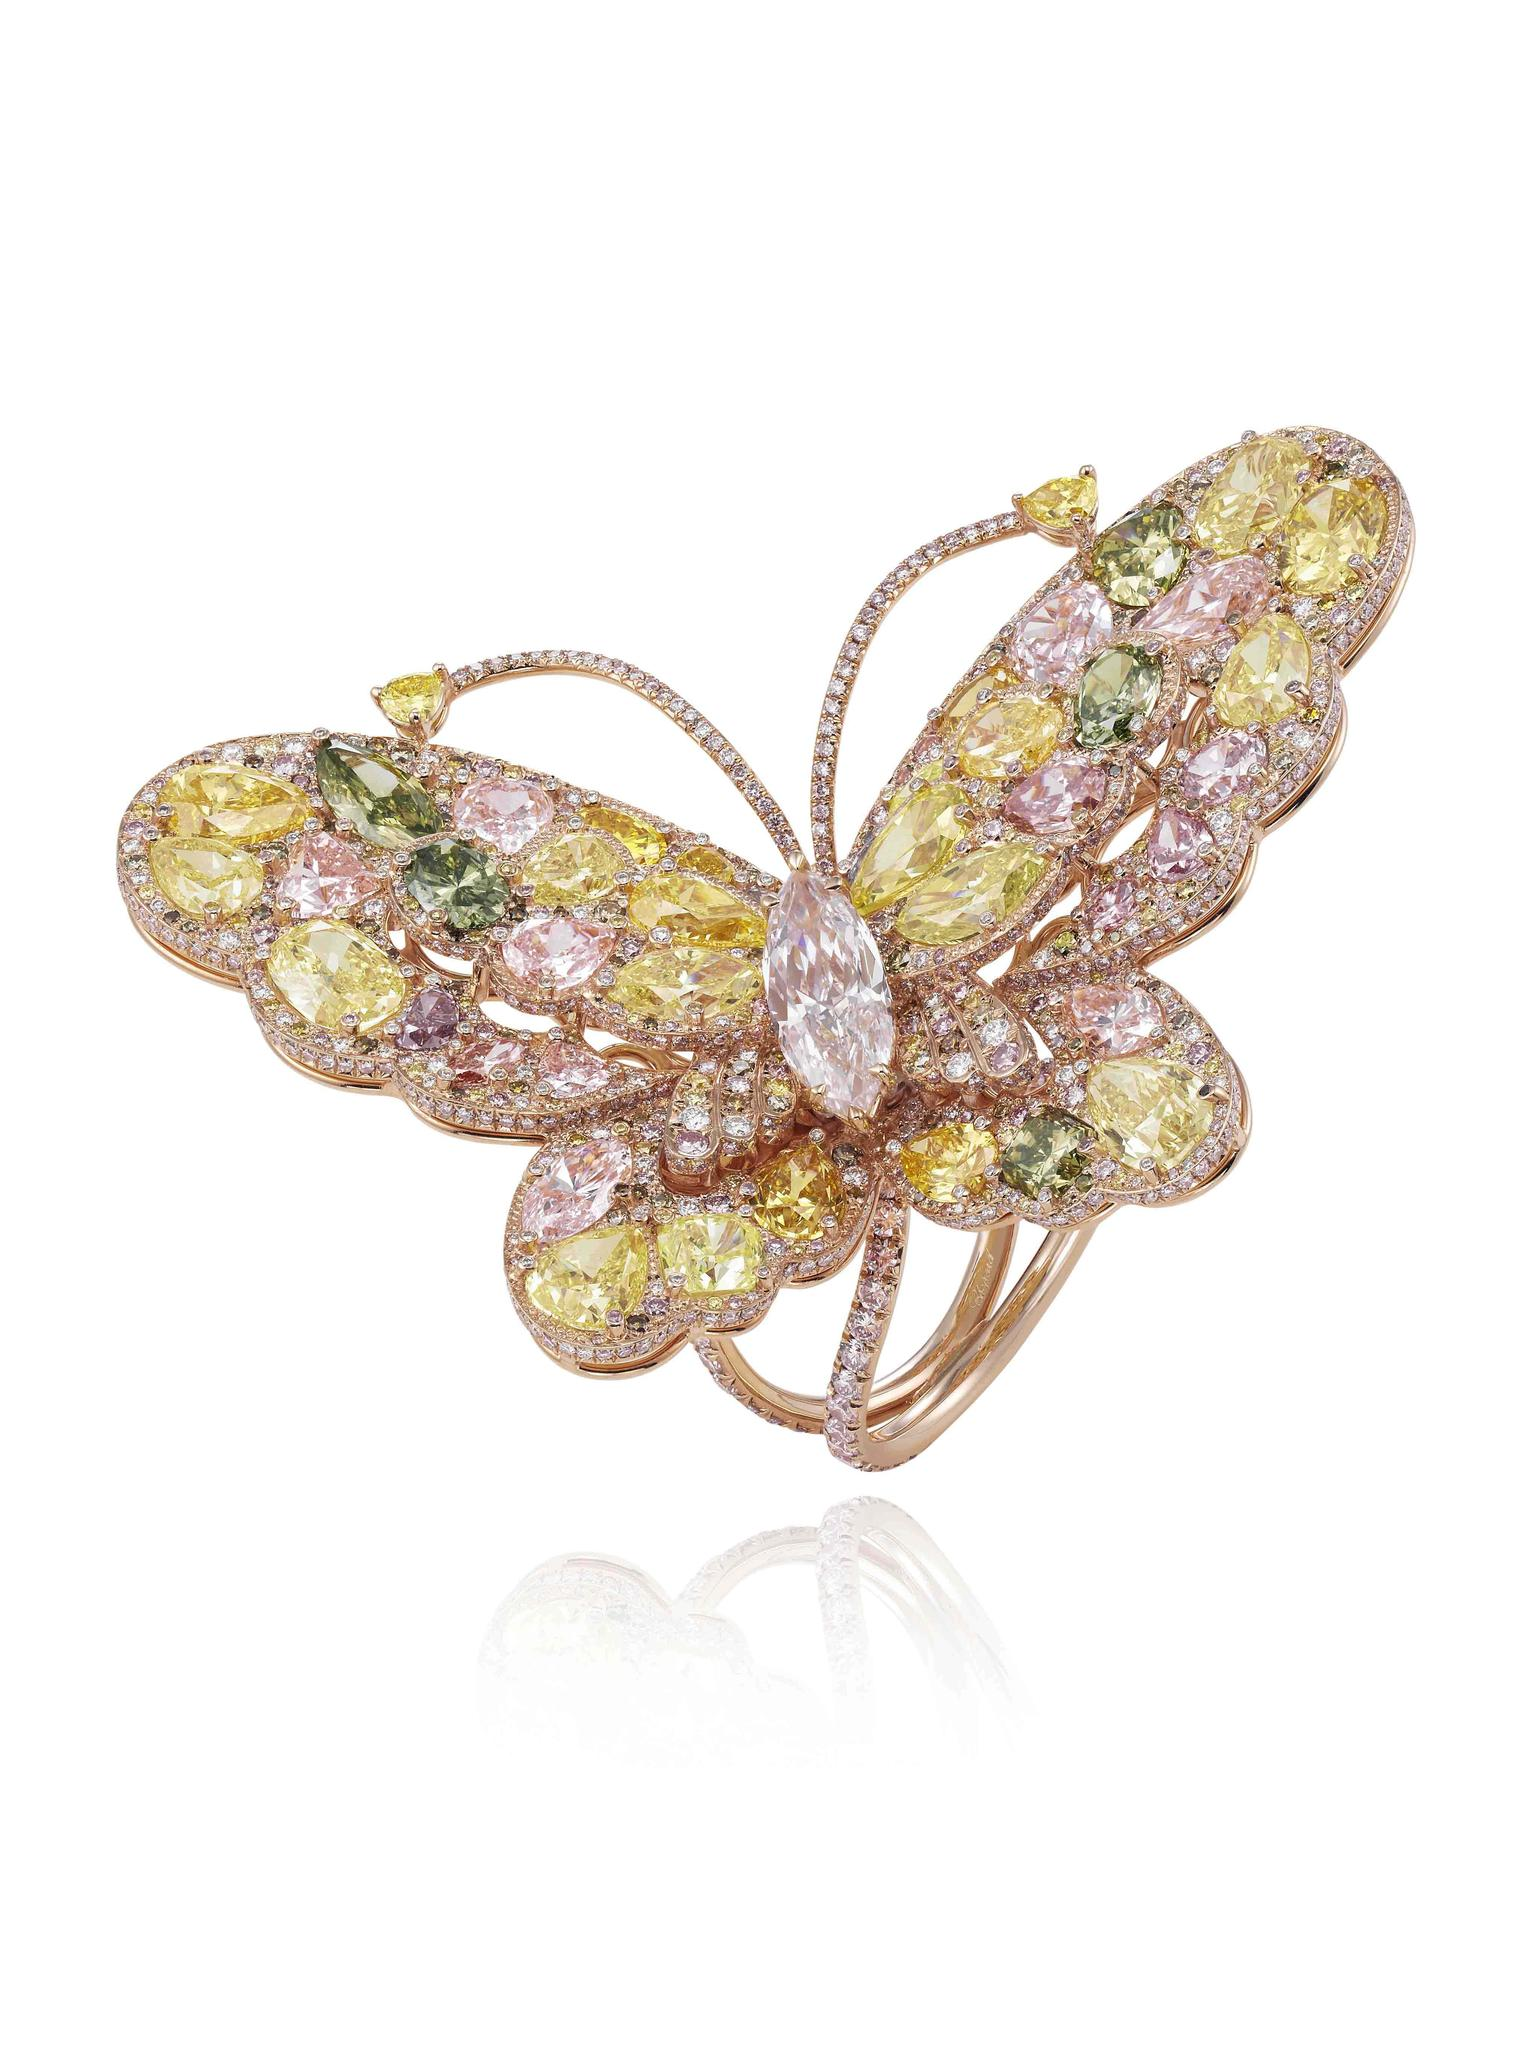 Chopard Red Carpet Collection 2014 Butterfly ring